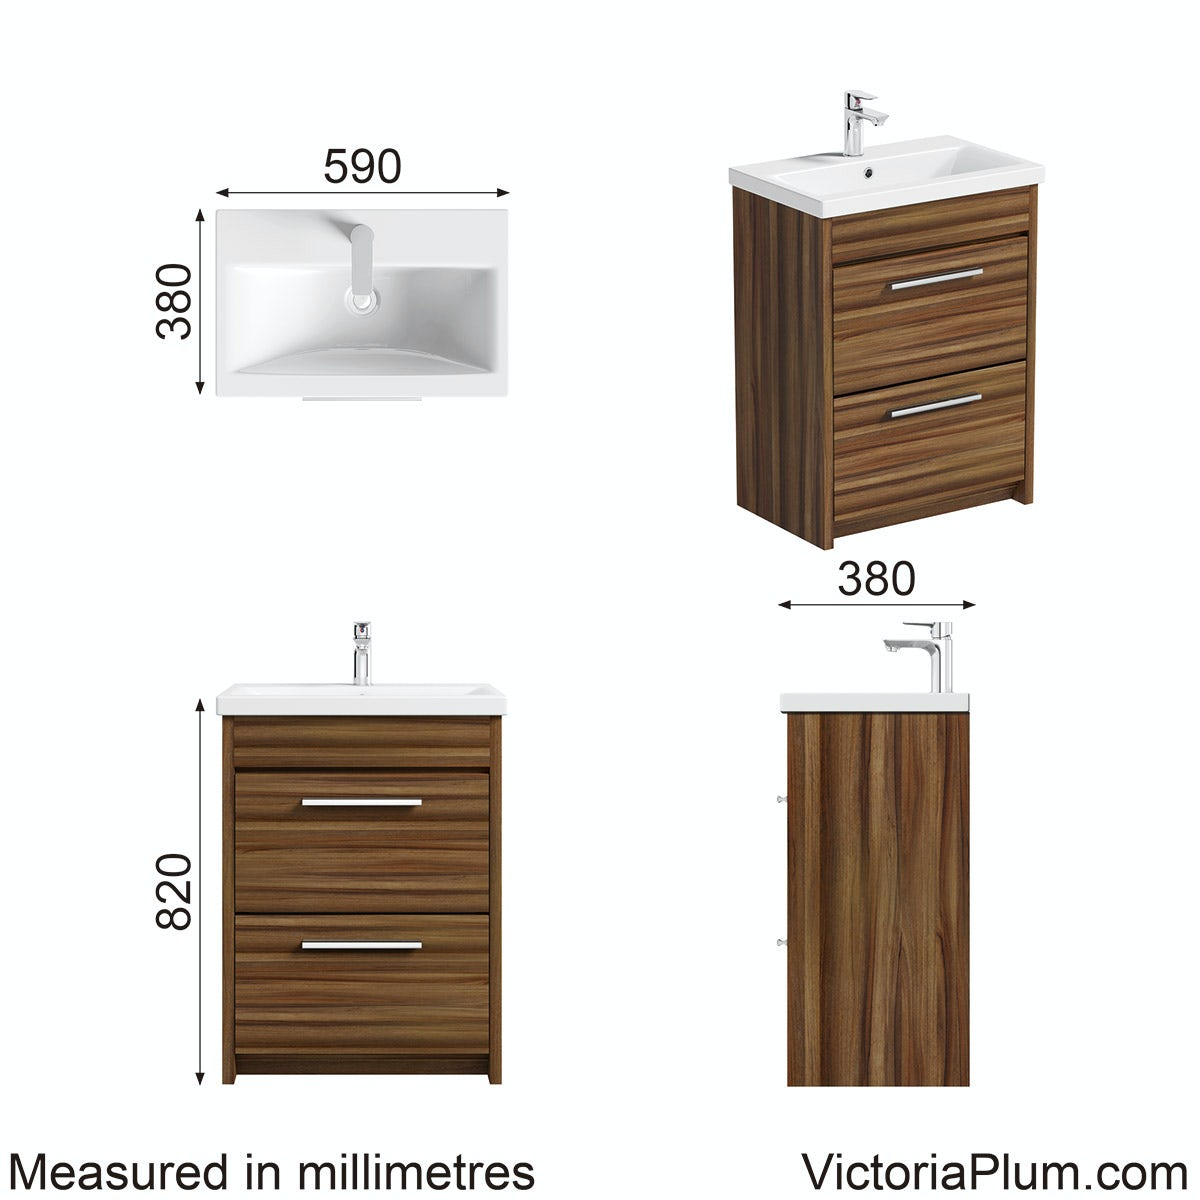 Dimensions for Clarity walnut vanity drawer unit with basin 600mm